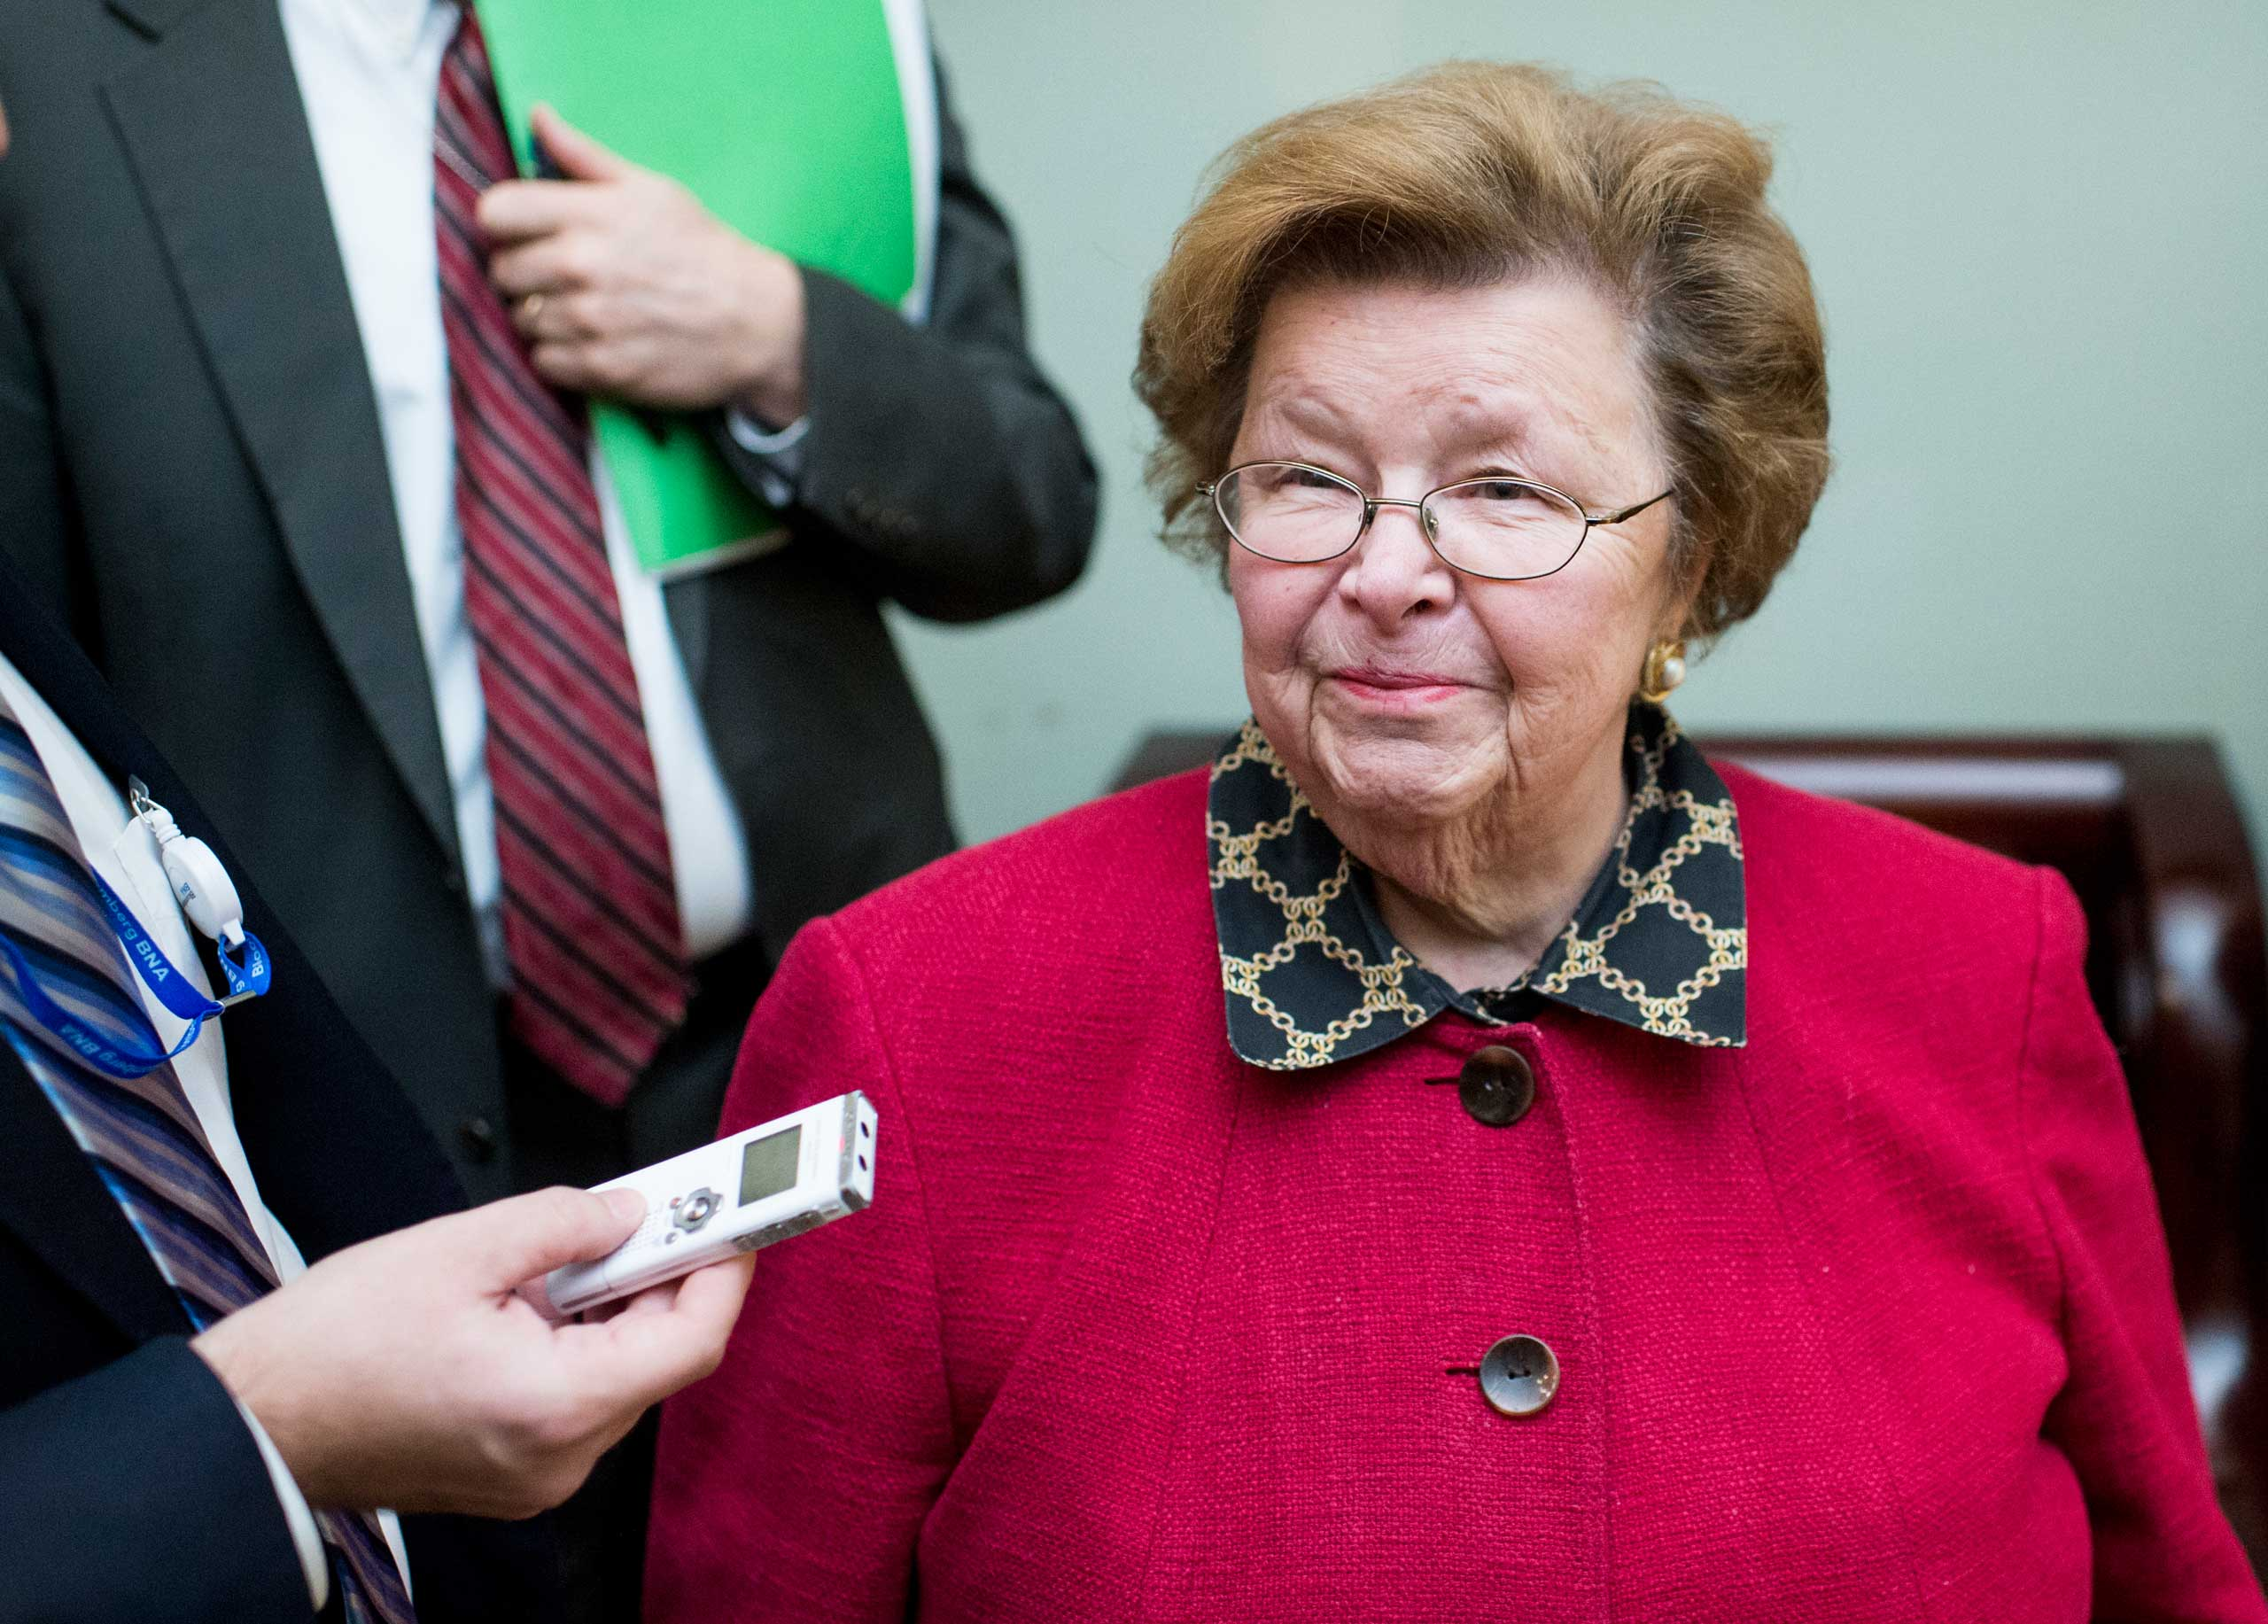 Senator Barbara Mikulsk (D., Md.) speaks with reporters as she arrives for the Senate Democrats' policy lunch on Dec. 9, 2014, in Washington, D.C.